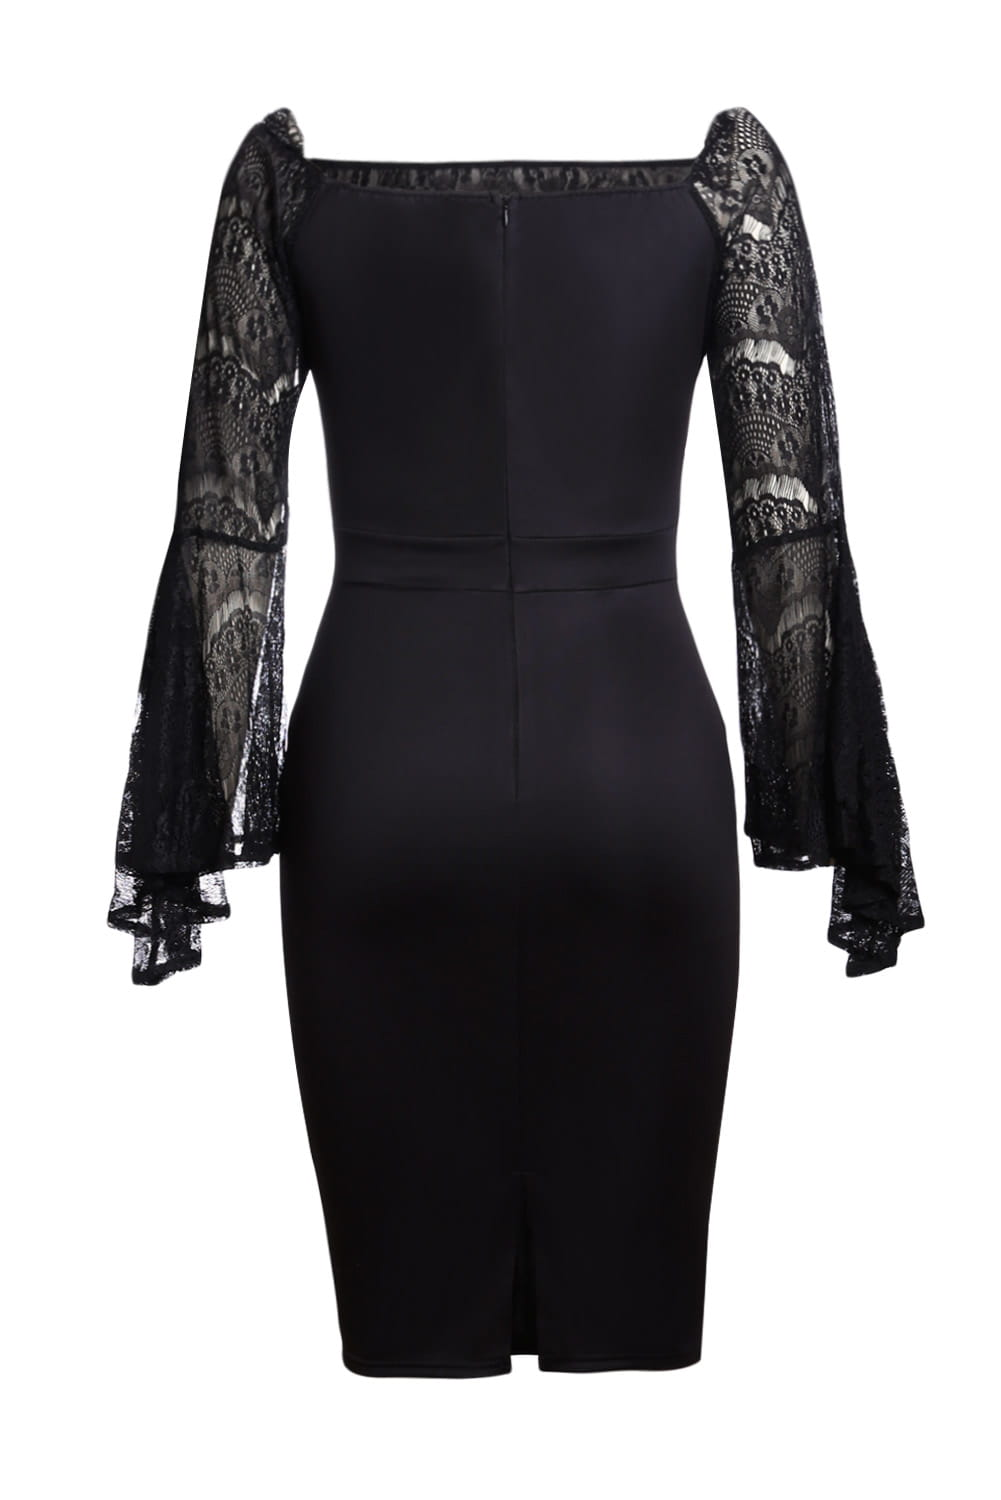 8459c02df1 ...  environment cache images 300 300 productGfx 7882 Black-Lace-Bell-Sleeve